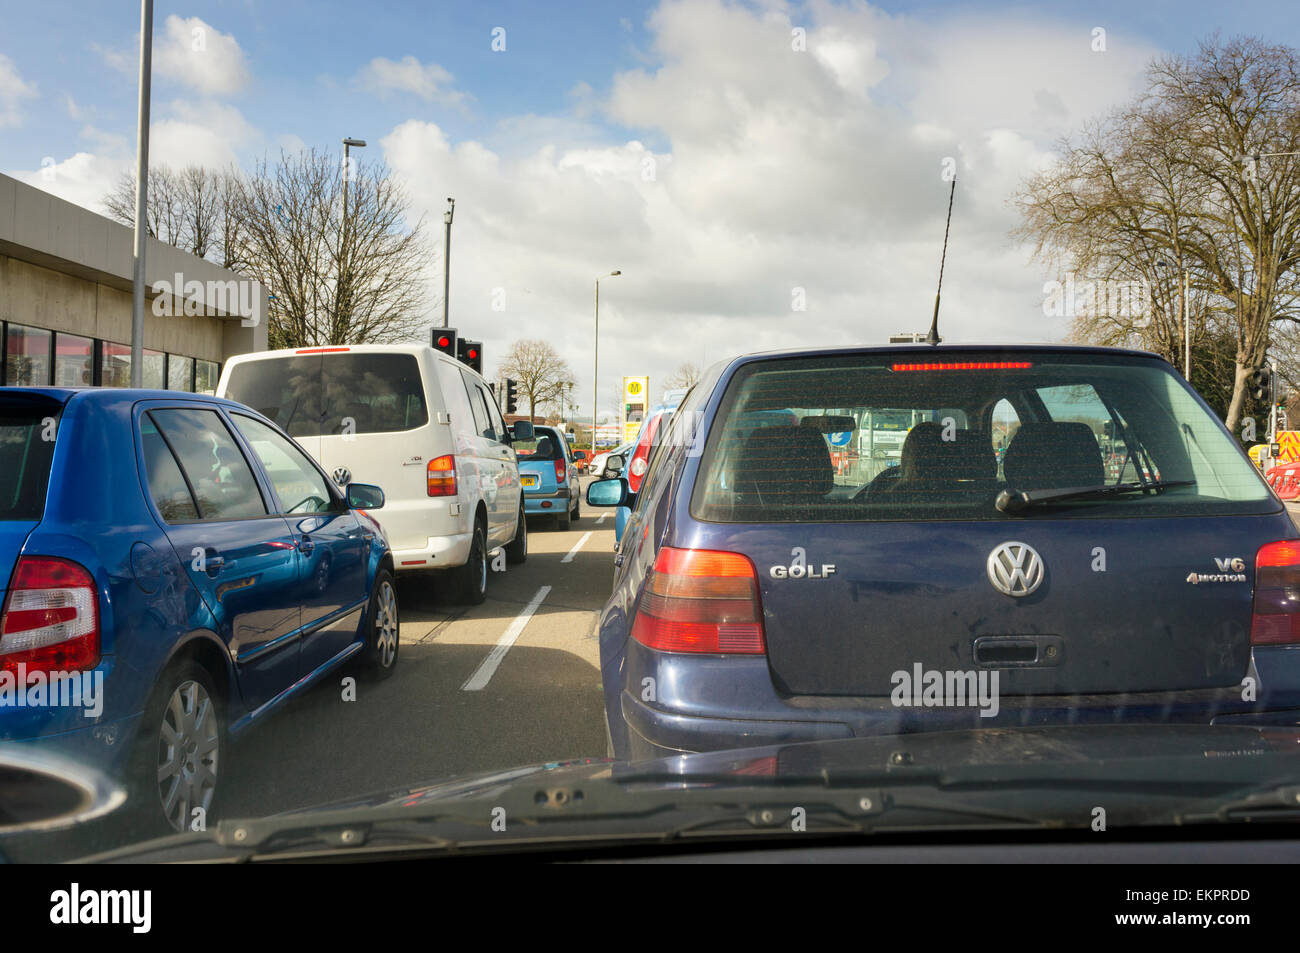 Traffic jam of cars queuing at traffic lights with roadworks in a city, England, UK - Stock Image